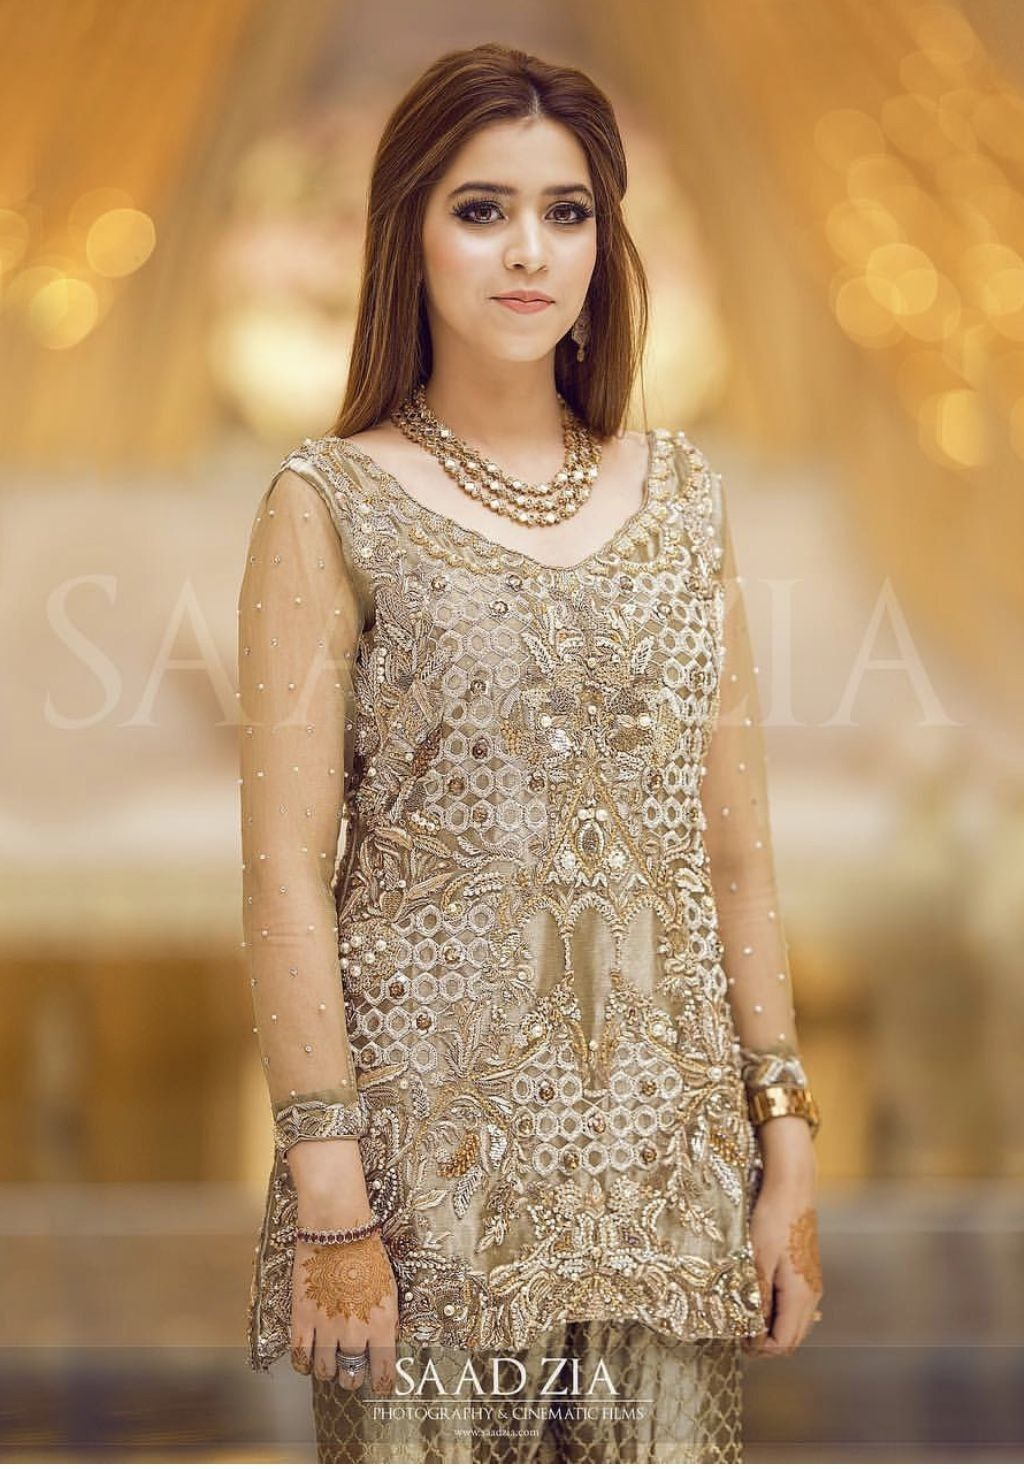 Casual dresses to wear to a wedding  Pin by faraz on dresses  Pinterest  Pakistani and Fashion